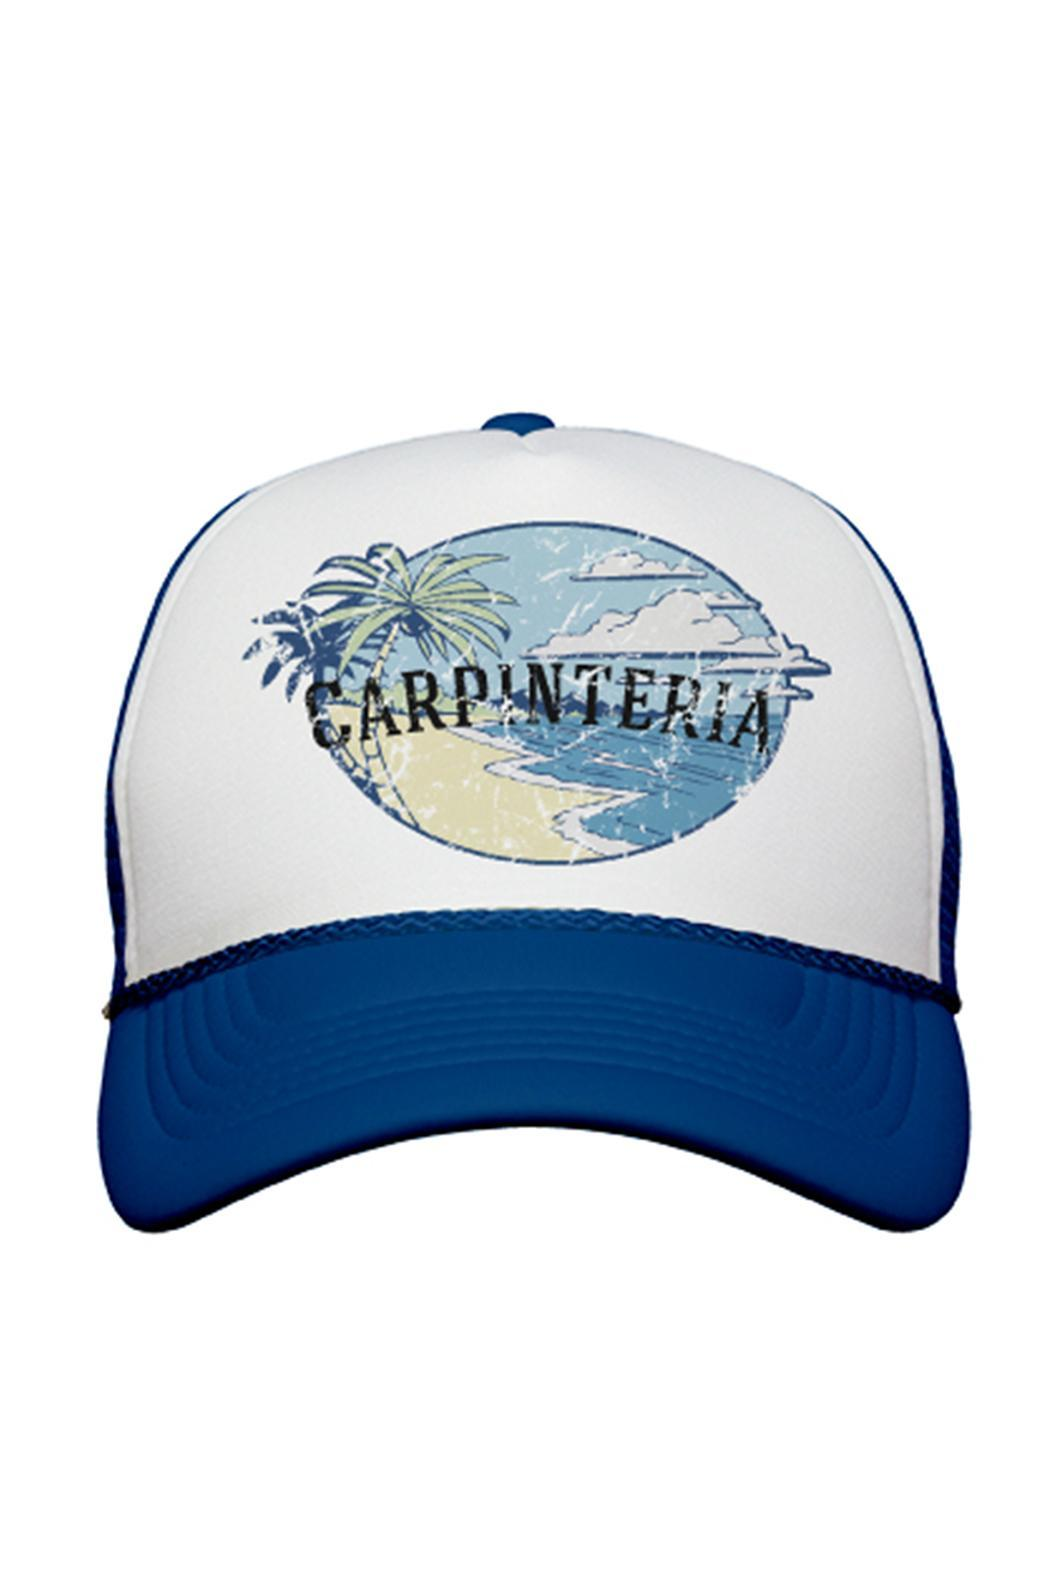 e50ca1a4a Private Label Carpinteria Hat from California by Clothesline ...